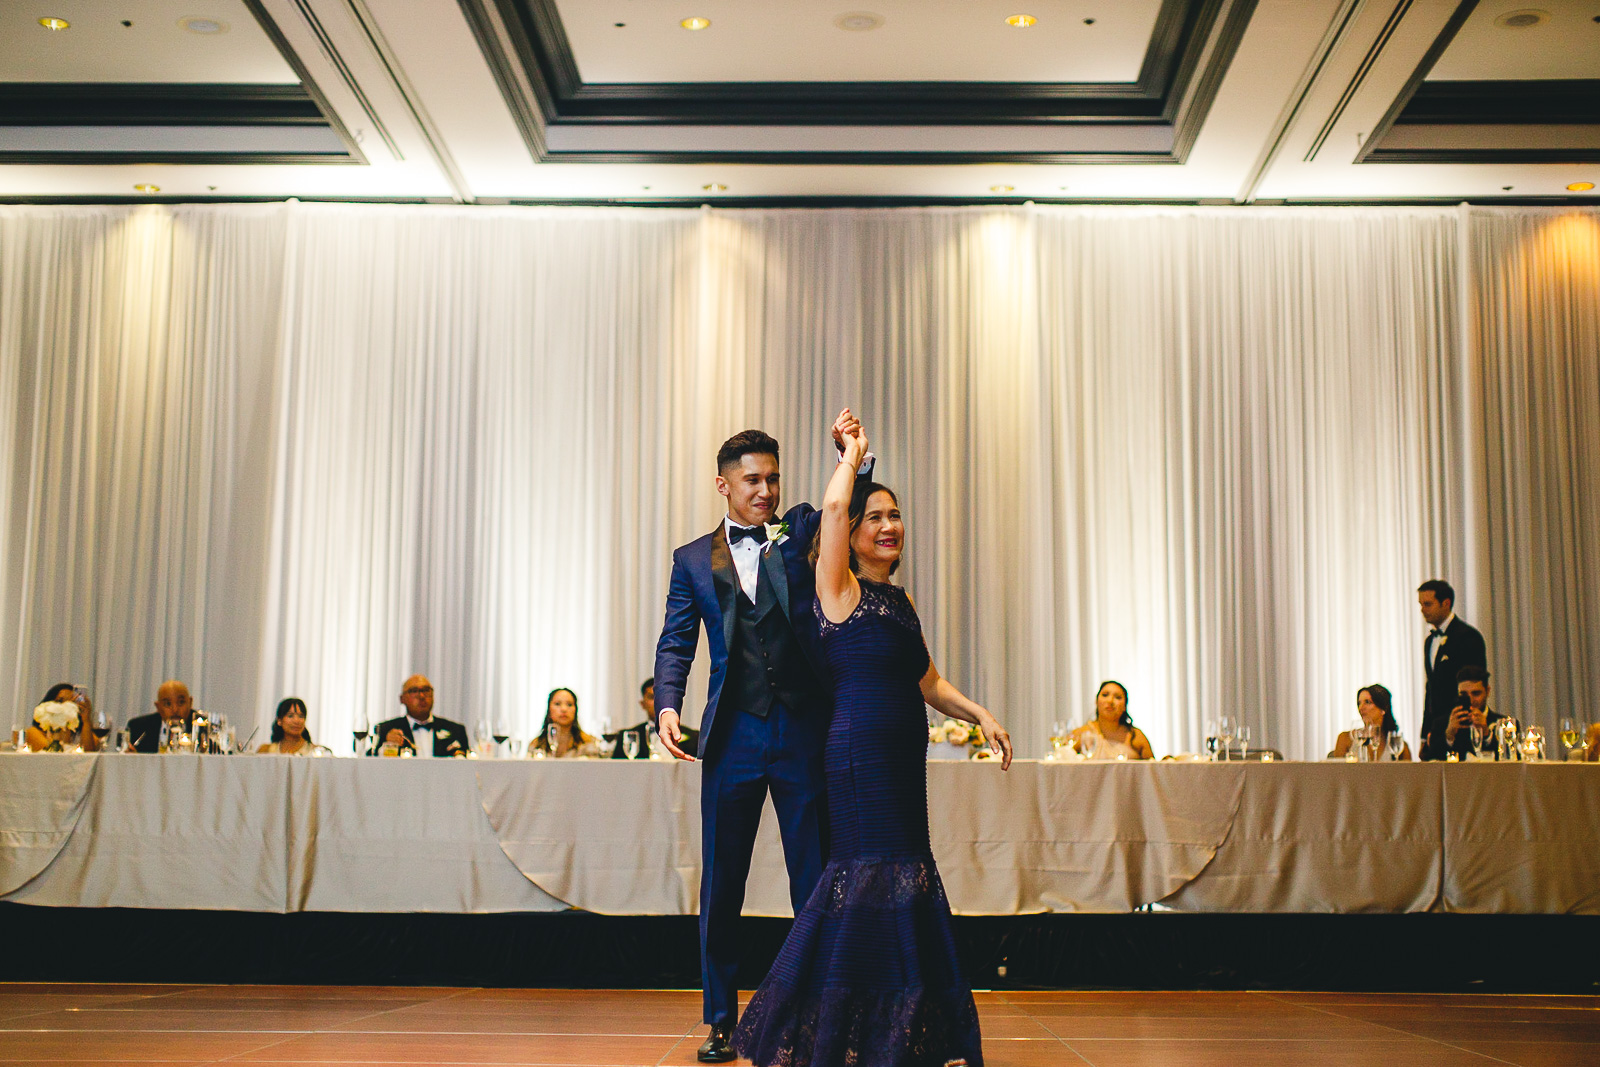 83 renaissance hotel chicago wedding photos - Renaissance Hotel Chicago Wedding Photos // Francine + RJ